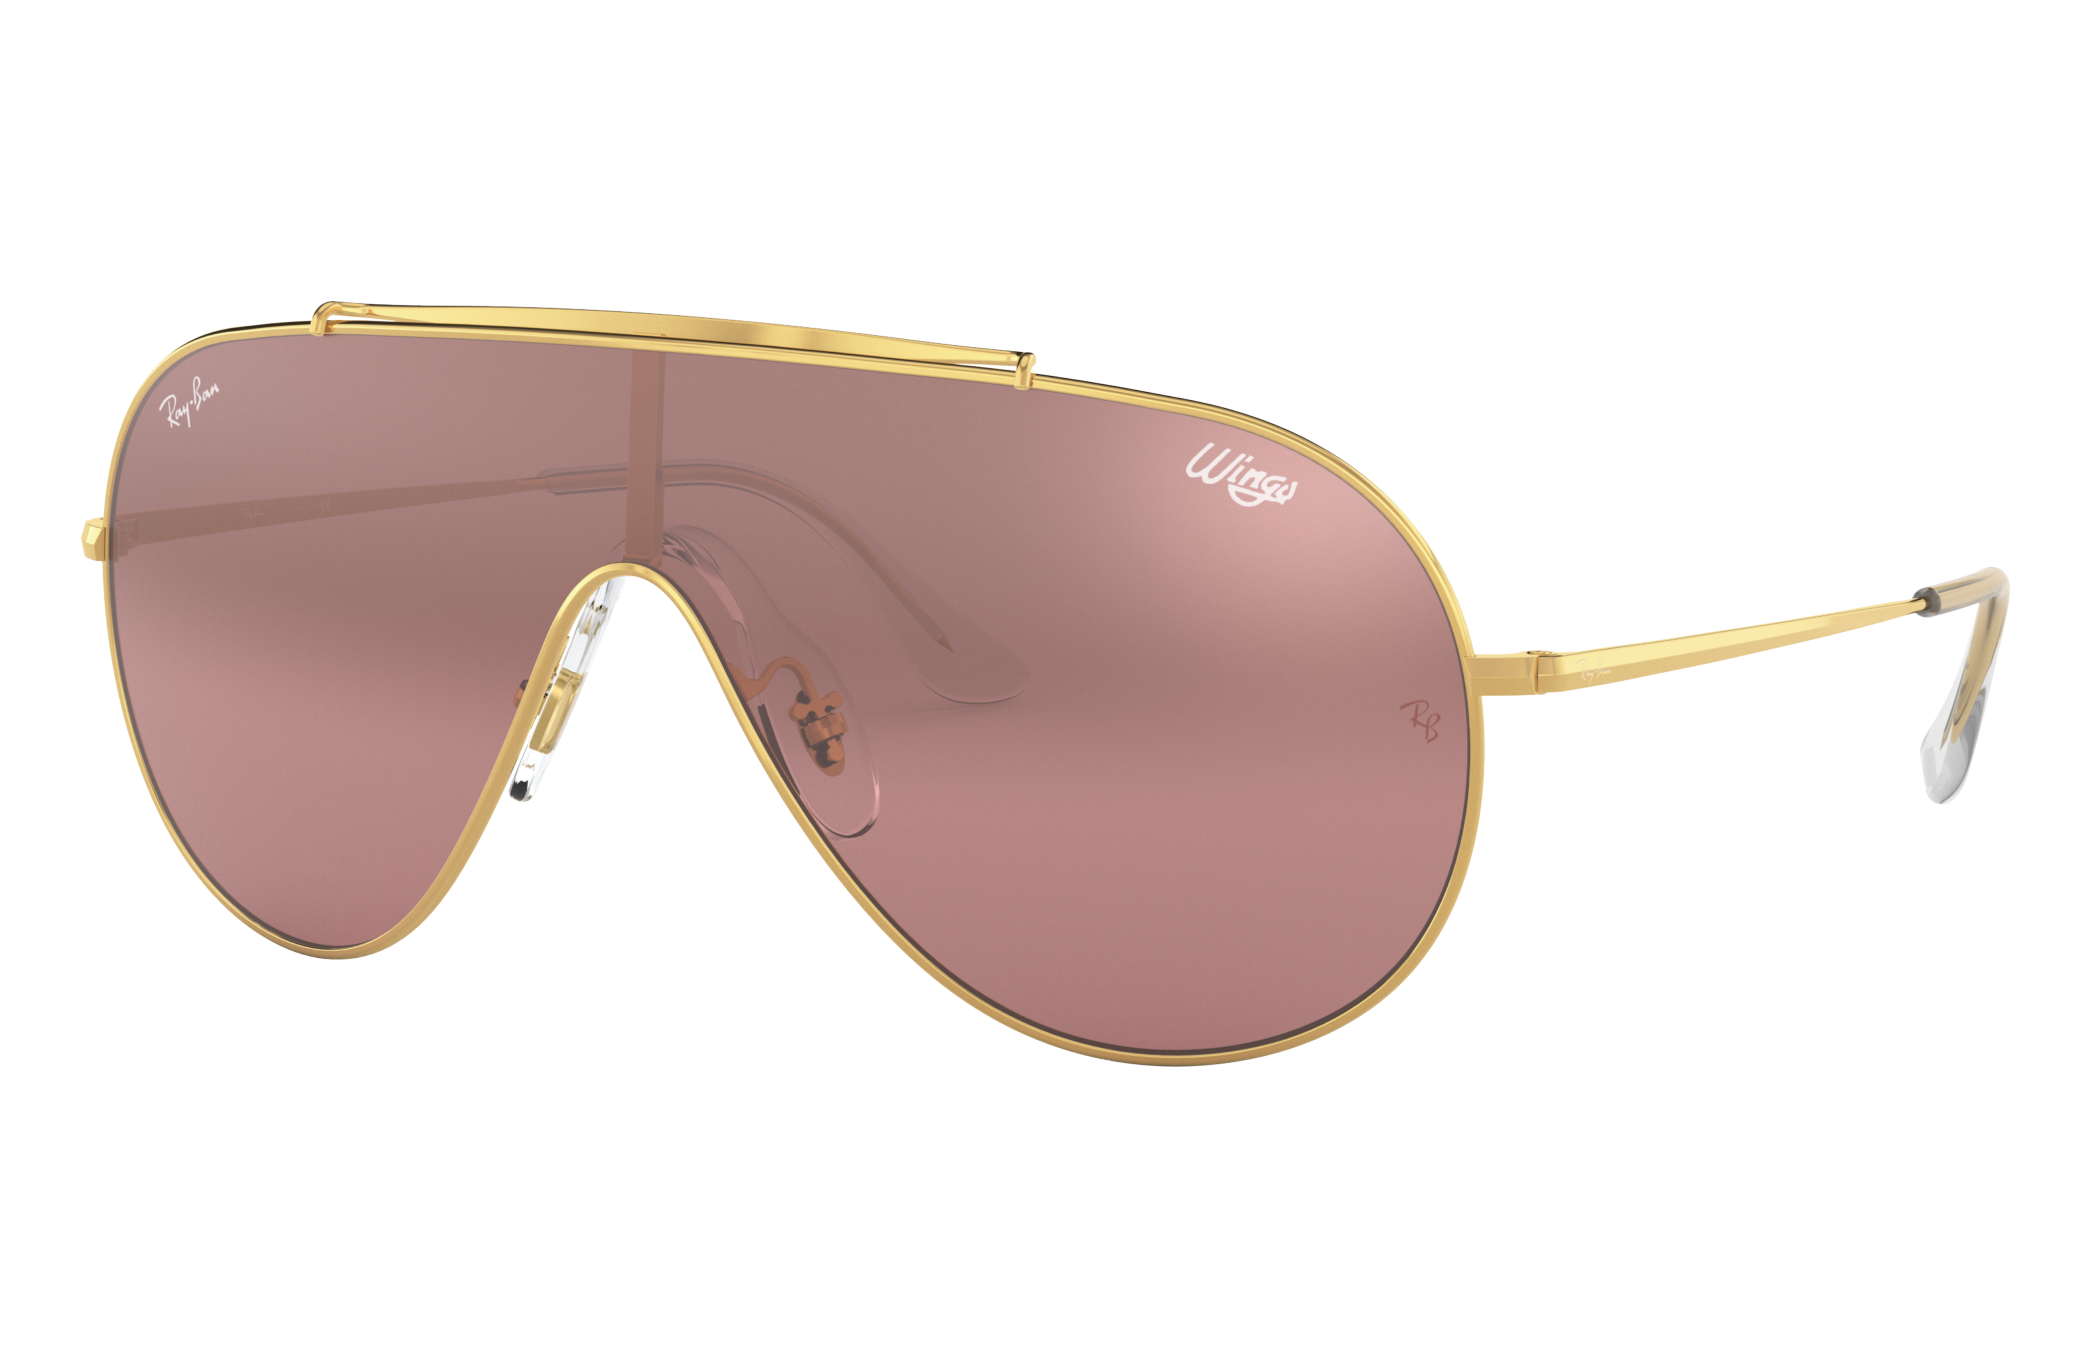 Ray-Ban Wings Gold, Pink Lenses - RB3597